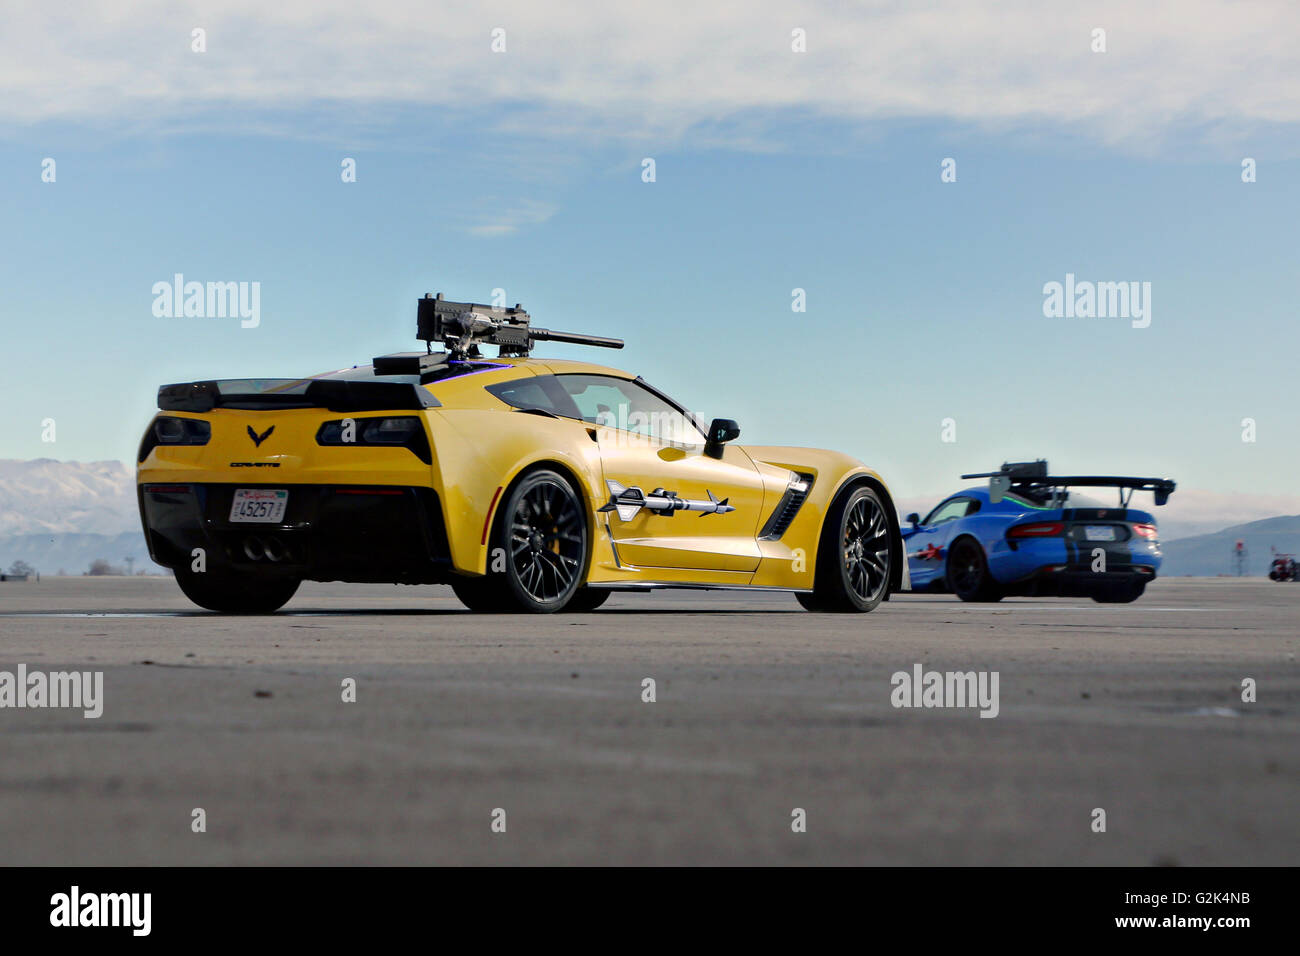 A Dodge Viper ACR and a Chevrolet Corvette Z06 rigged with prop weapons participate in a simulated dog fight during - Stock Image